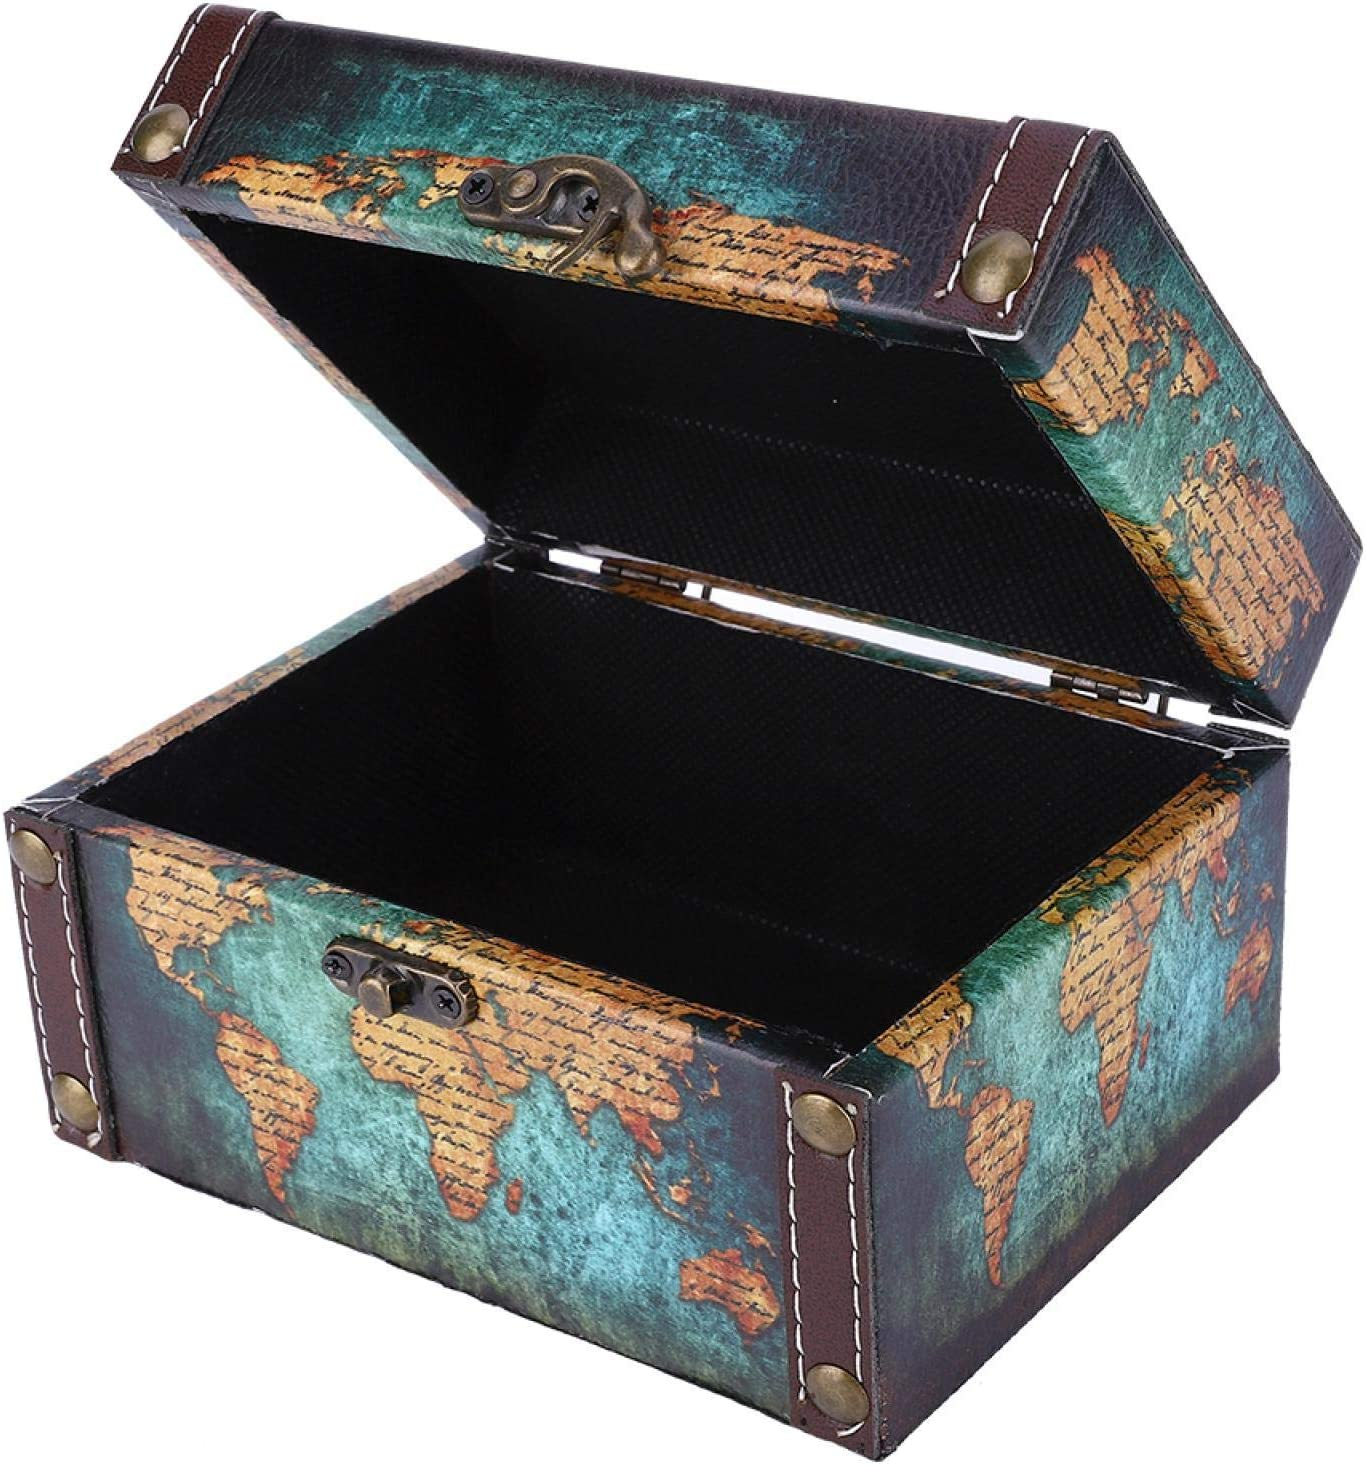 Aoutecen Jewelry Treasure Chest Desktop Wood Ornaments M Box for Ranking TOP7 Super Special SALE held